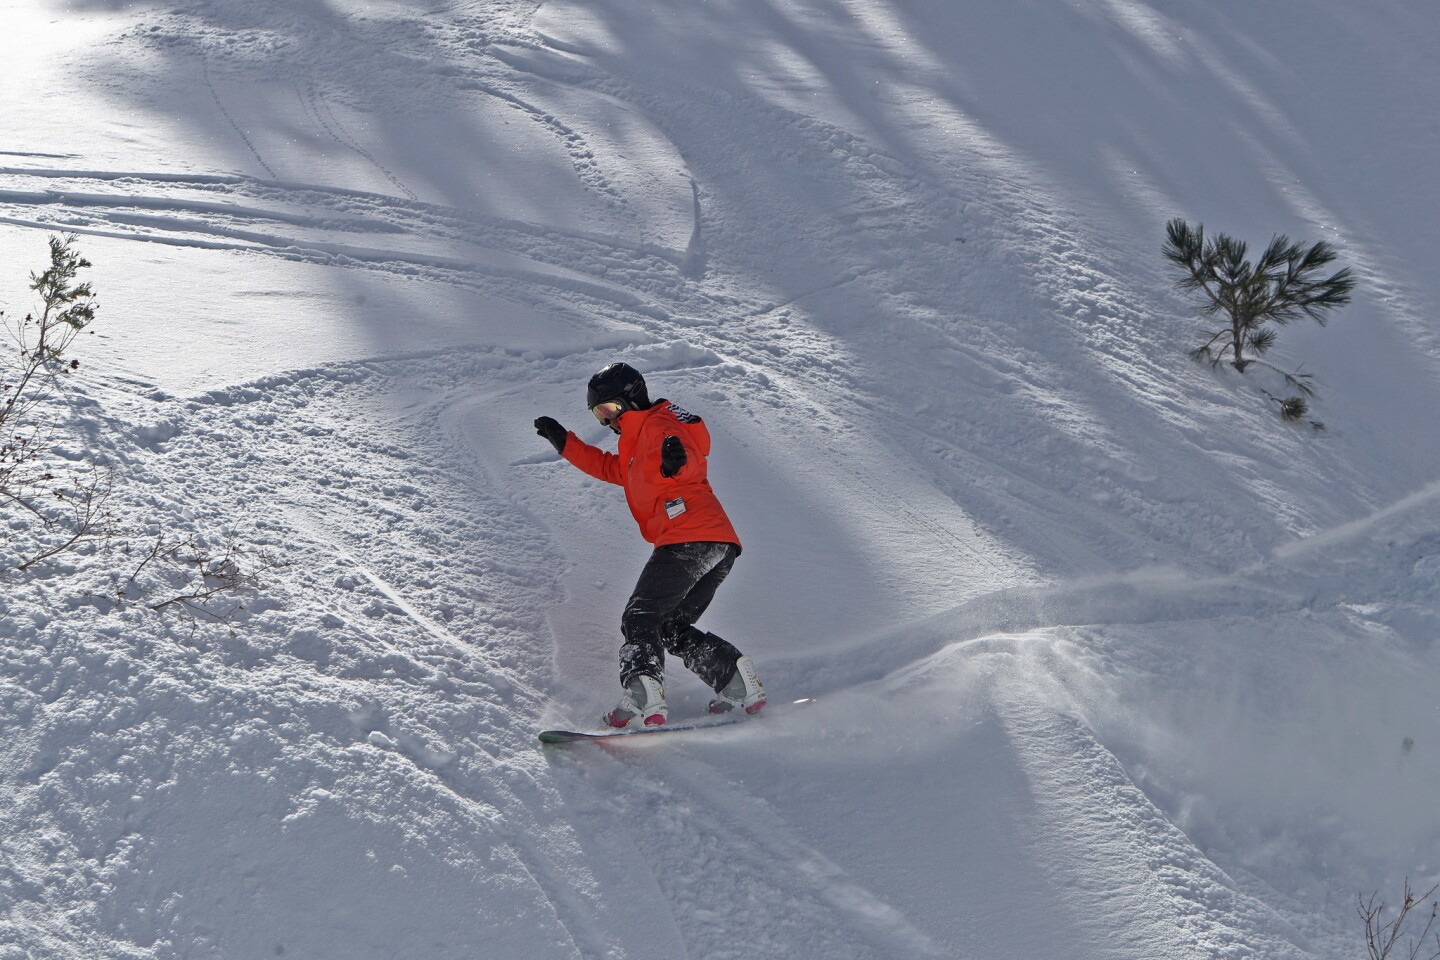 Photo Gallery: Mt. Waterman ski resort remains closed, skiers still enjoy powder conditions by hiking